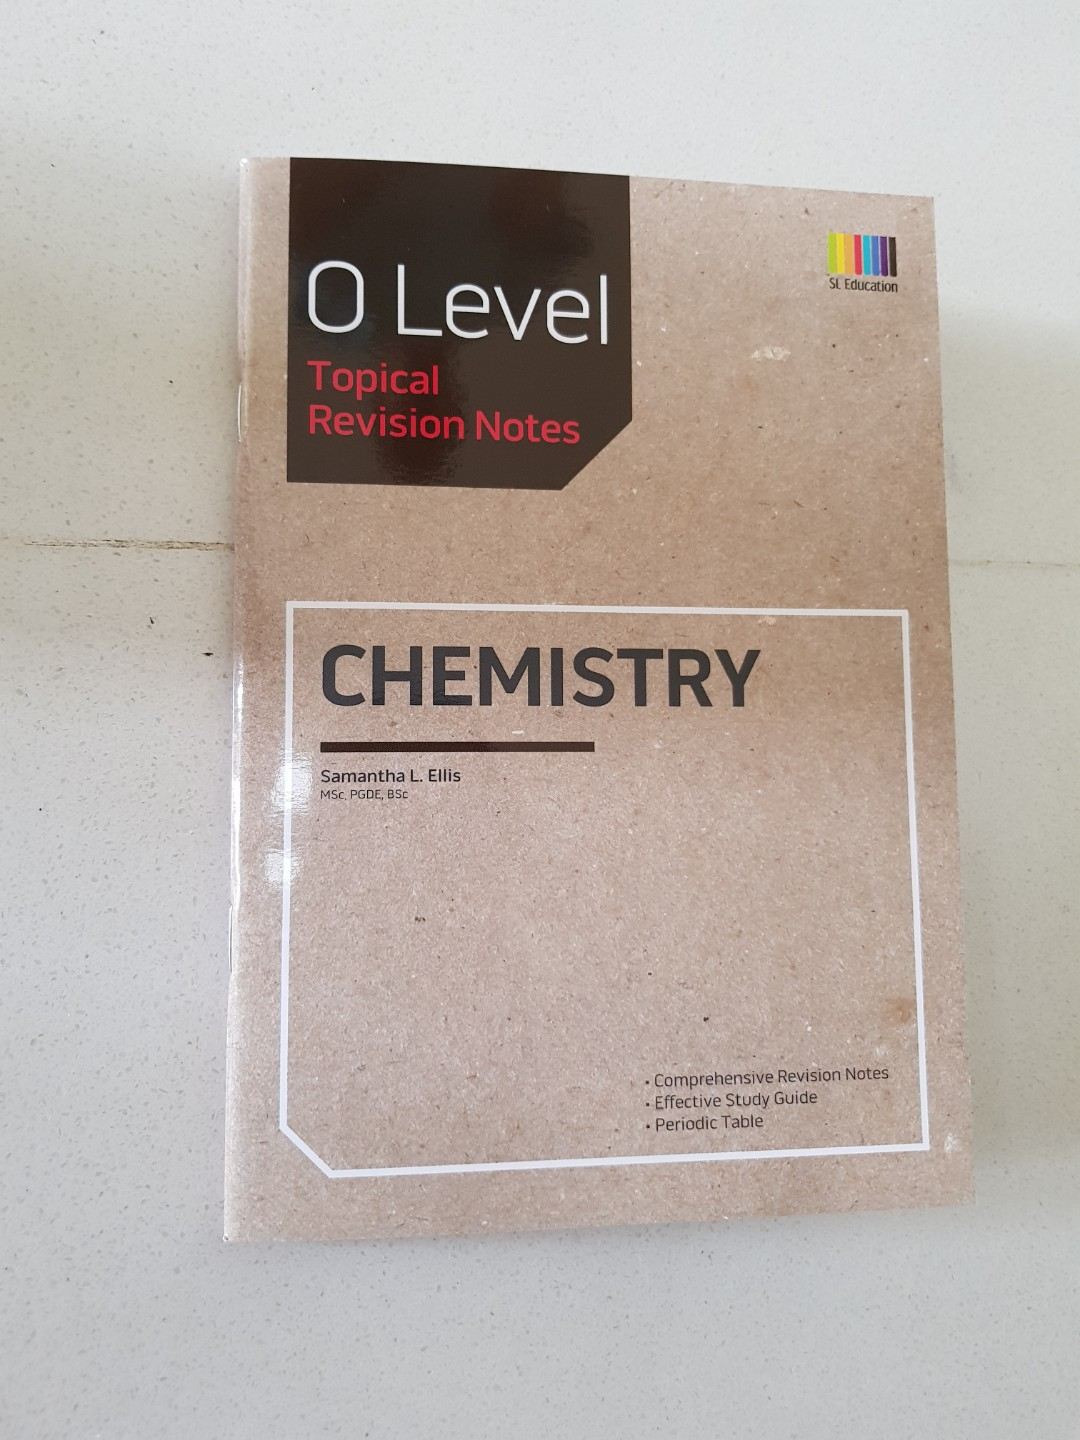 Chemistry O Level Tropical Revision Nites